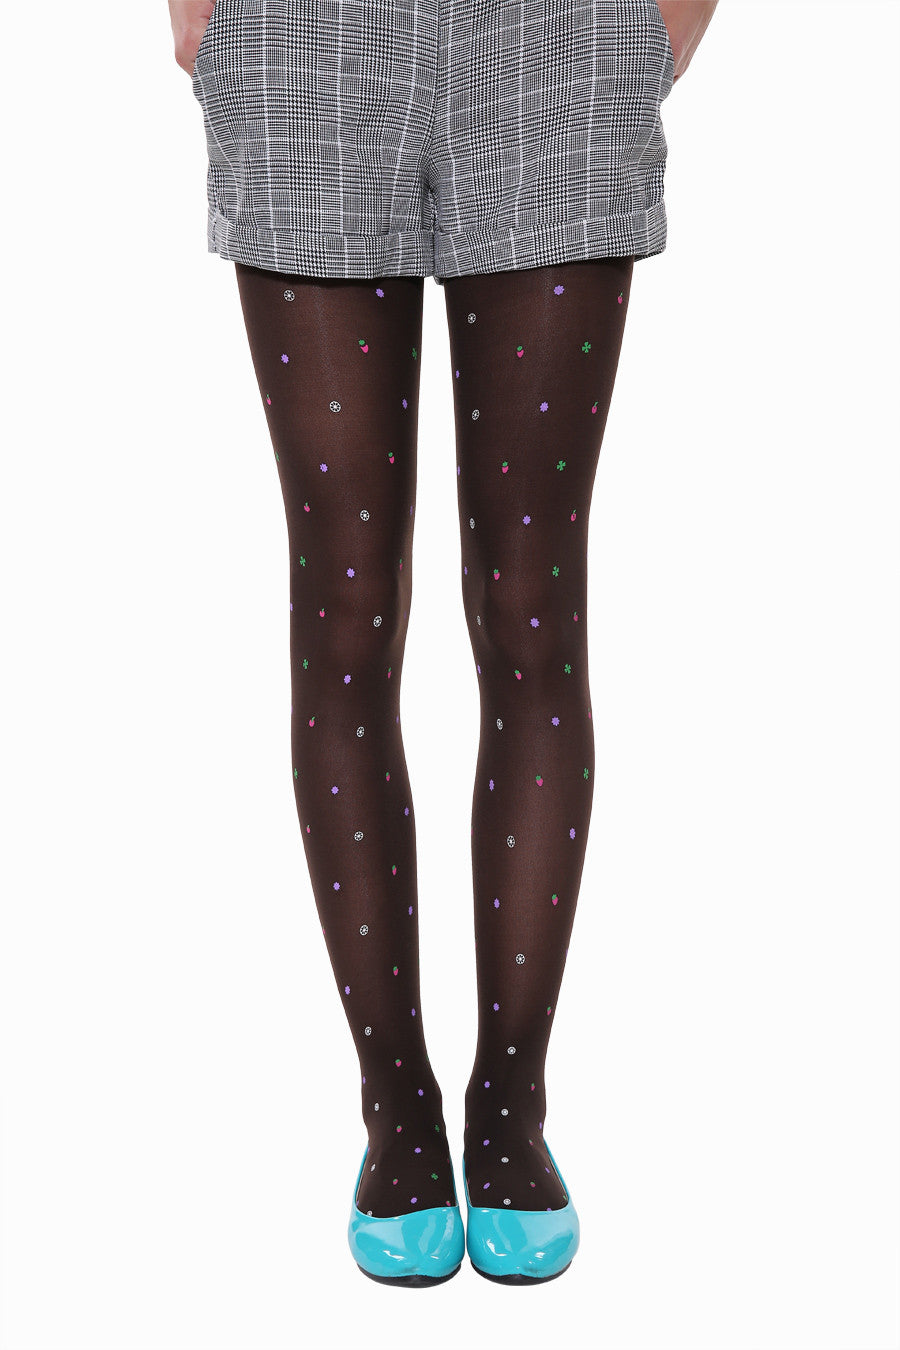 Candy Fruits Print Tights